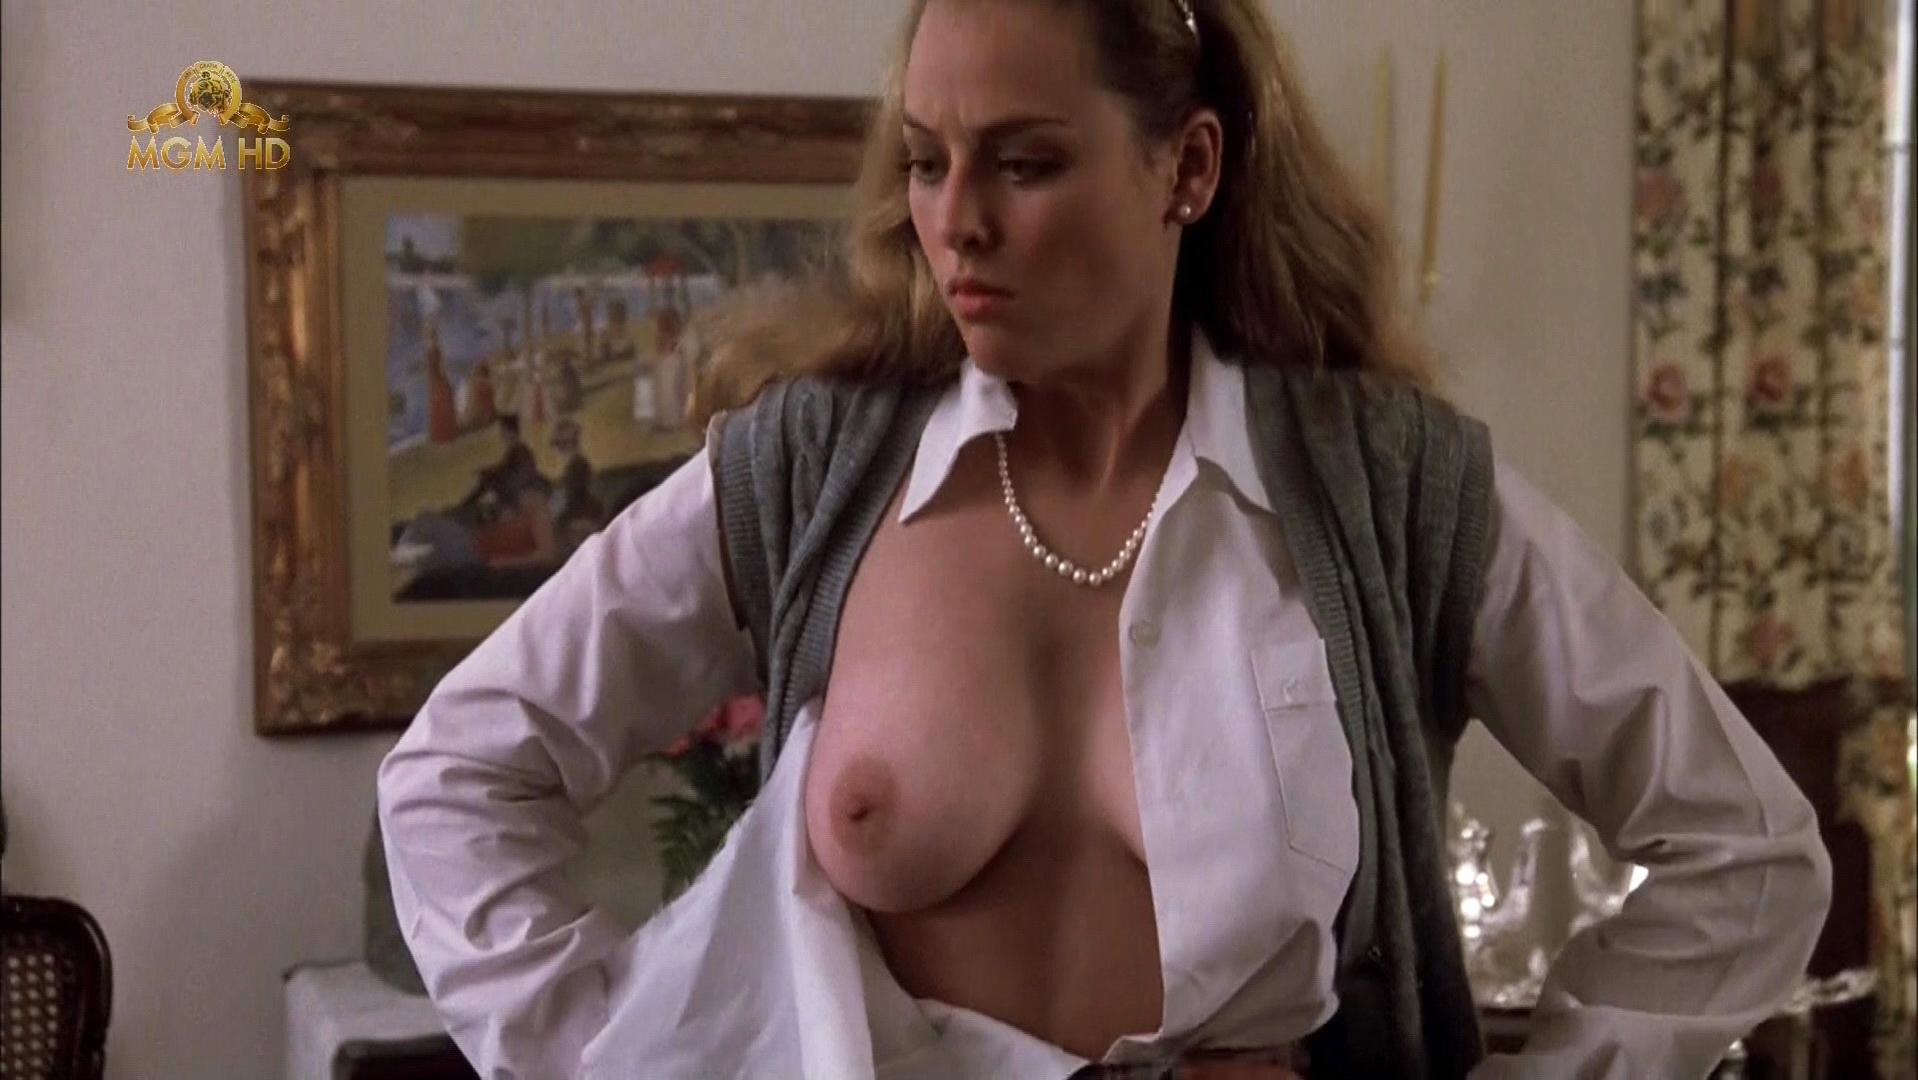 Virginia madsen desnuda en